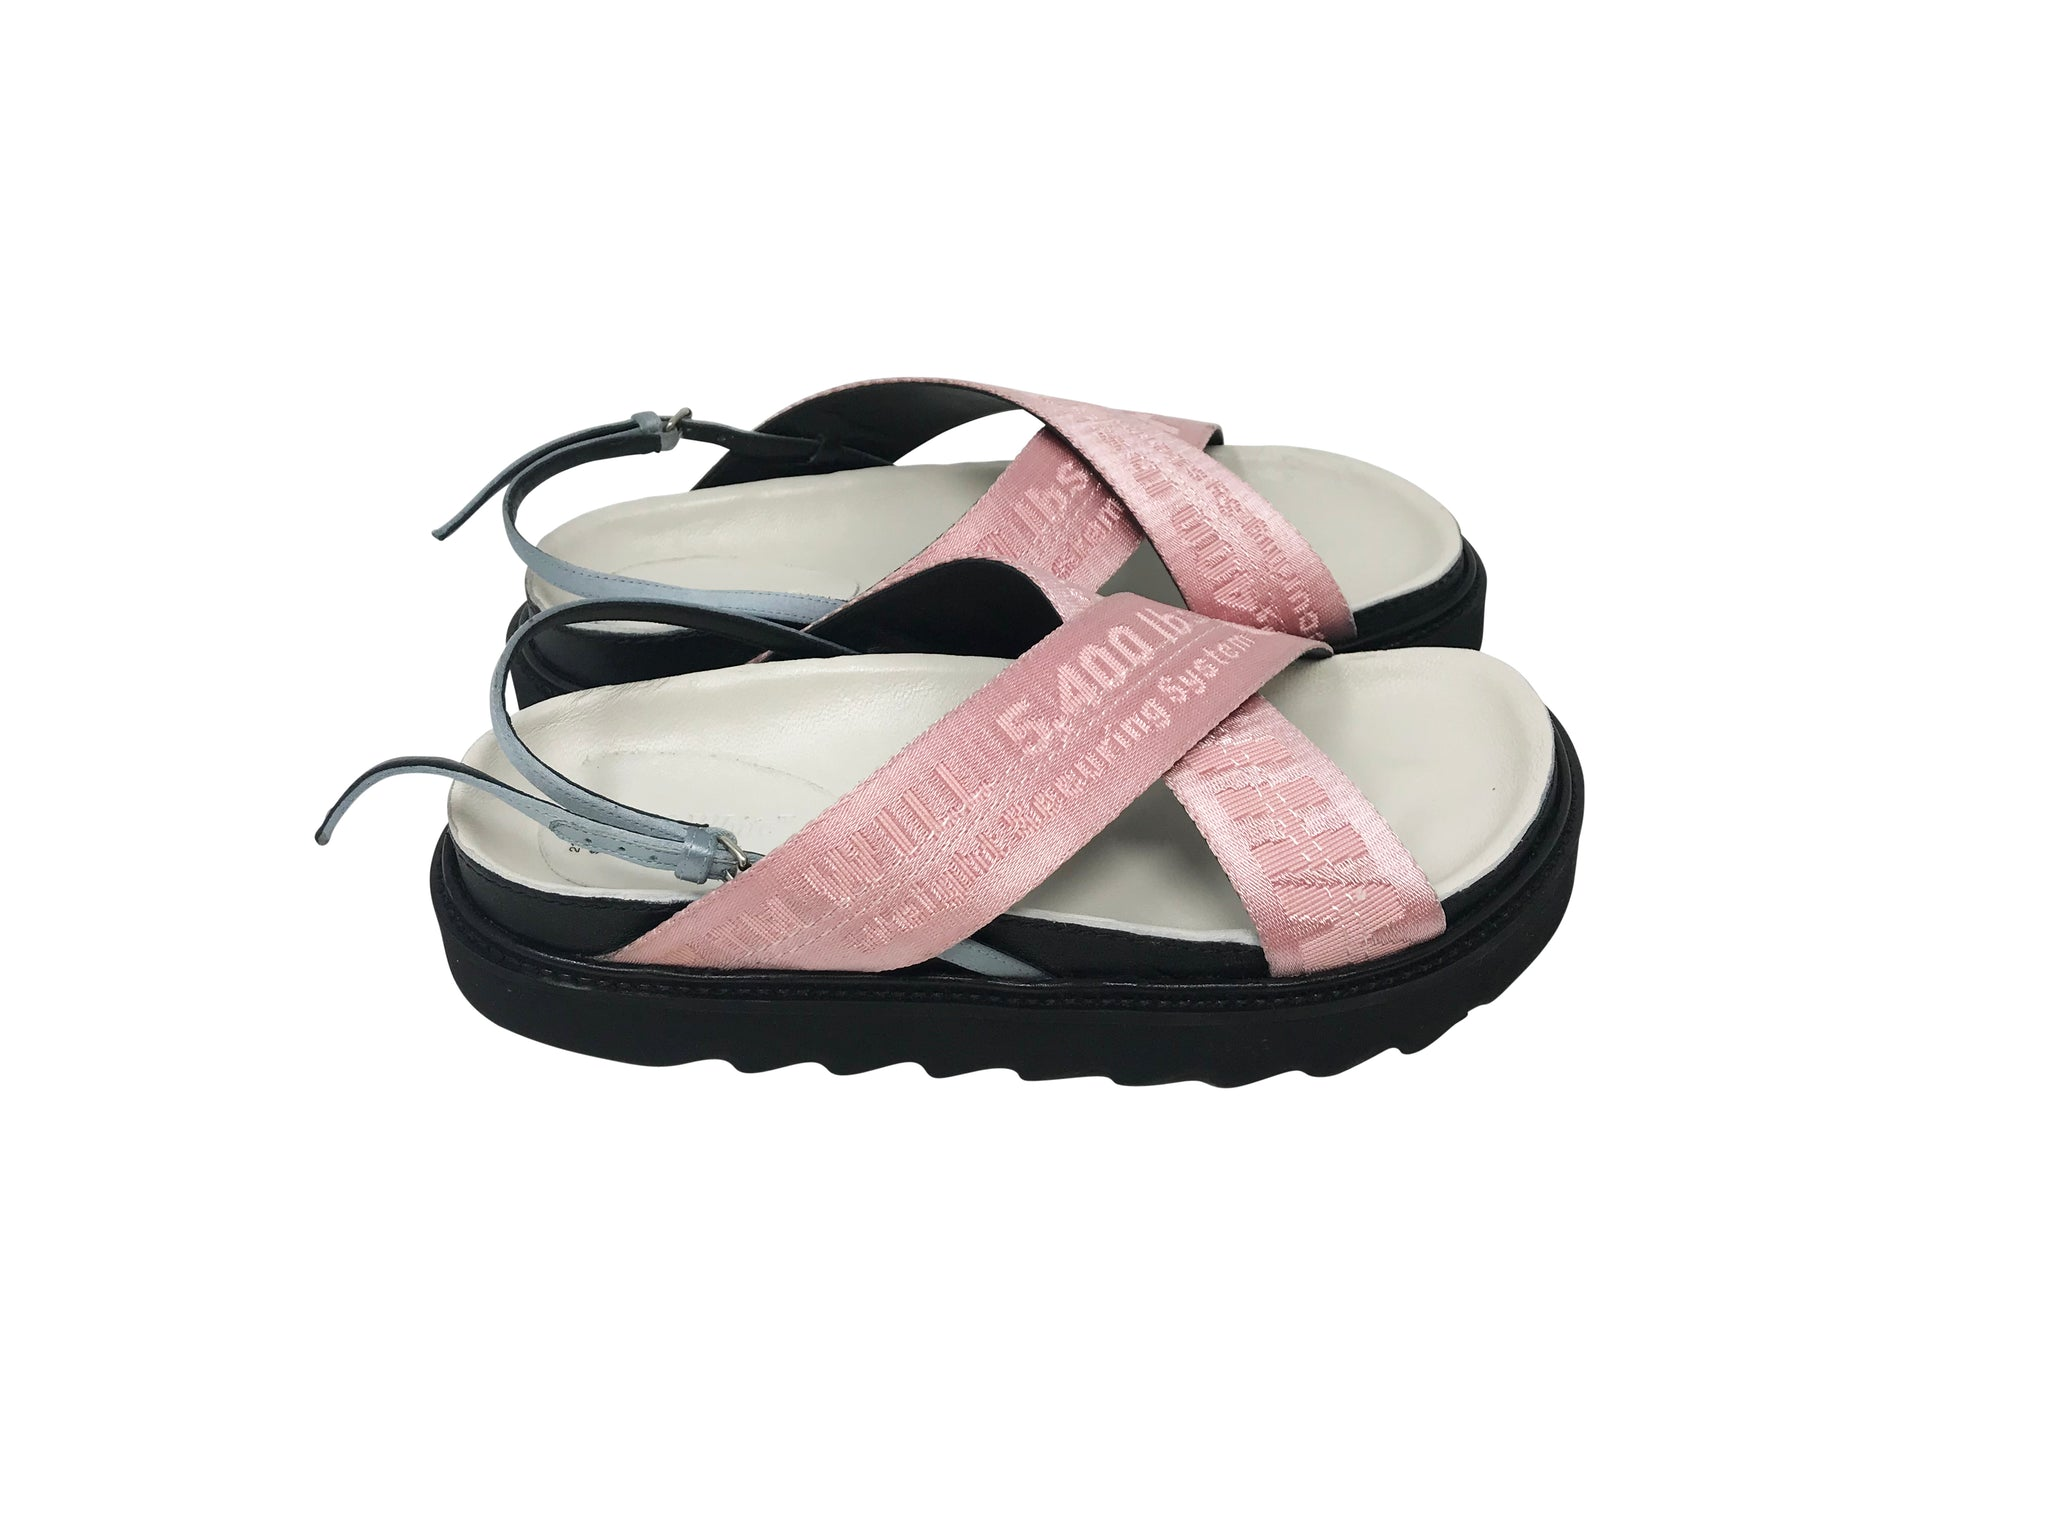 Off white sandals size 35